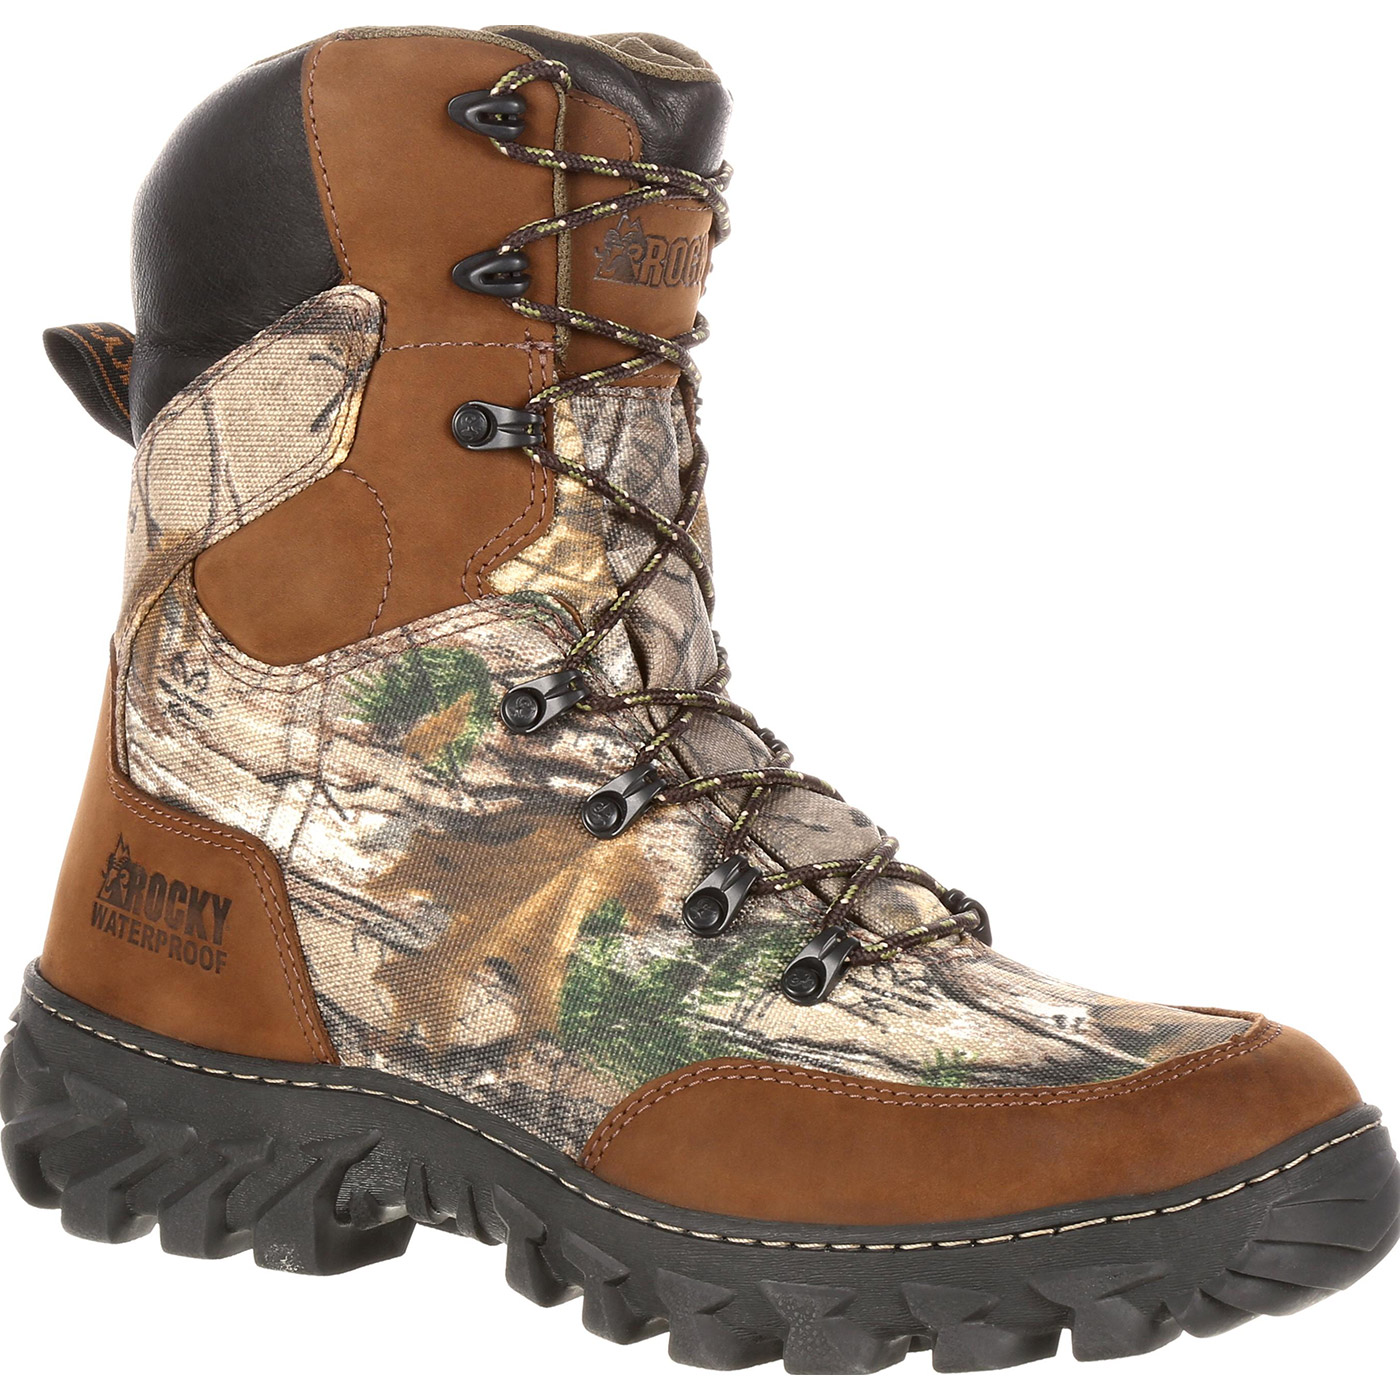 65f3a6314cb Rocky S2V Jungle Hunter Waterproof 800G Insulated Outdoor Boot